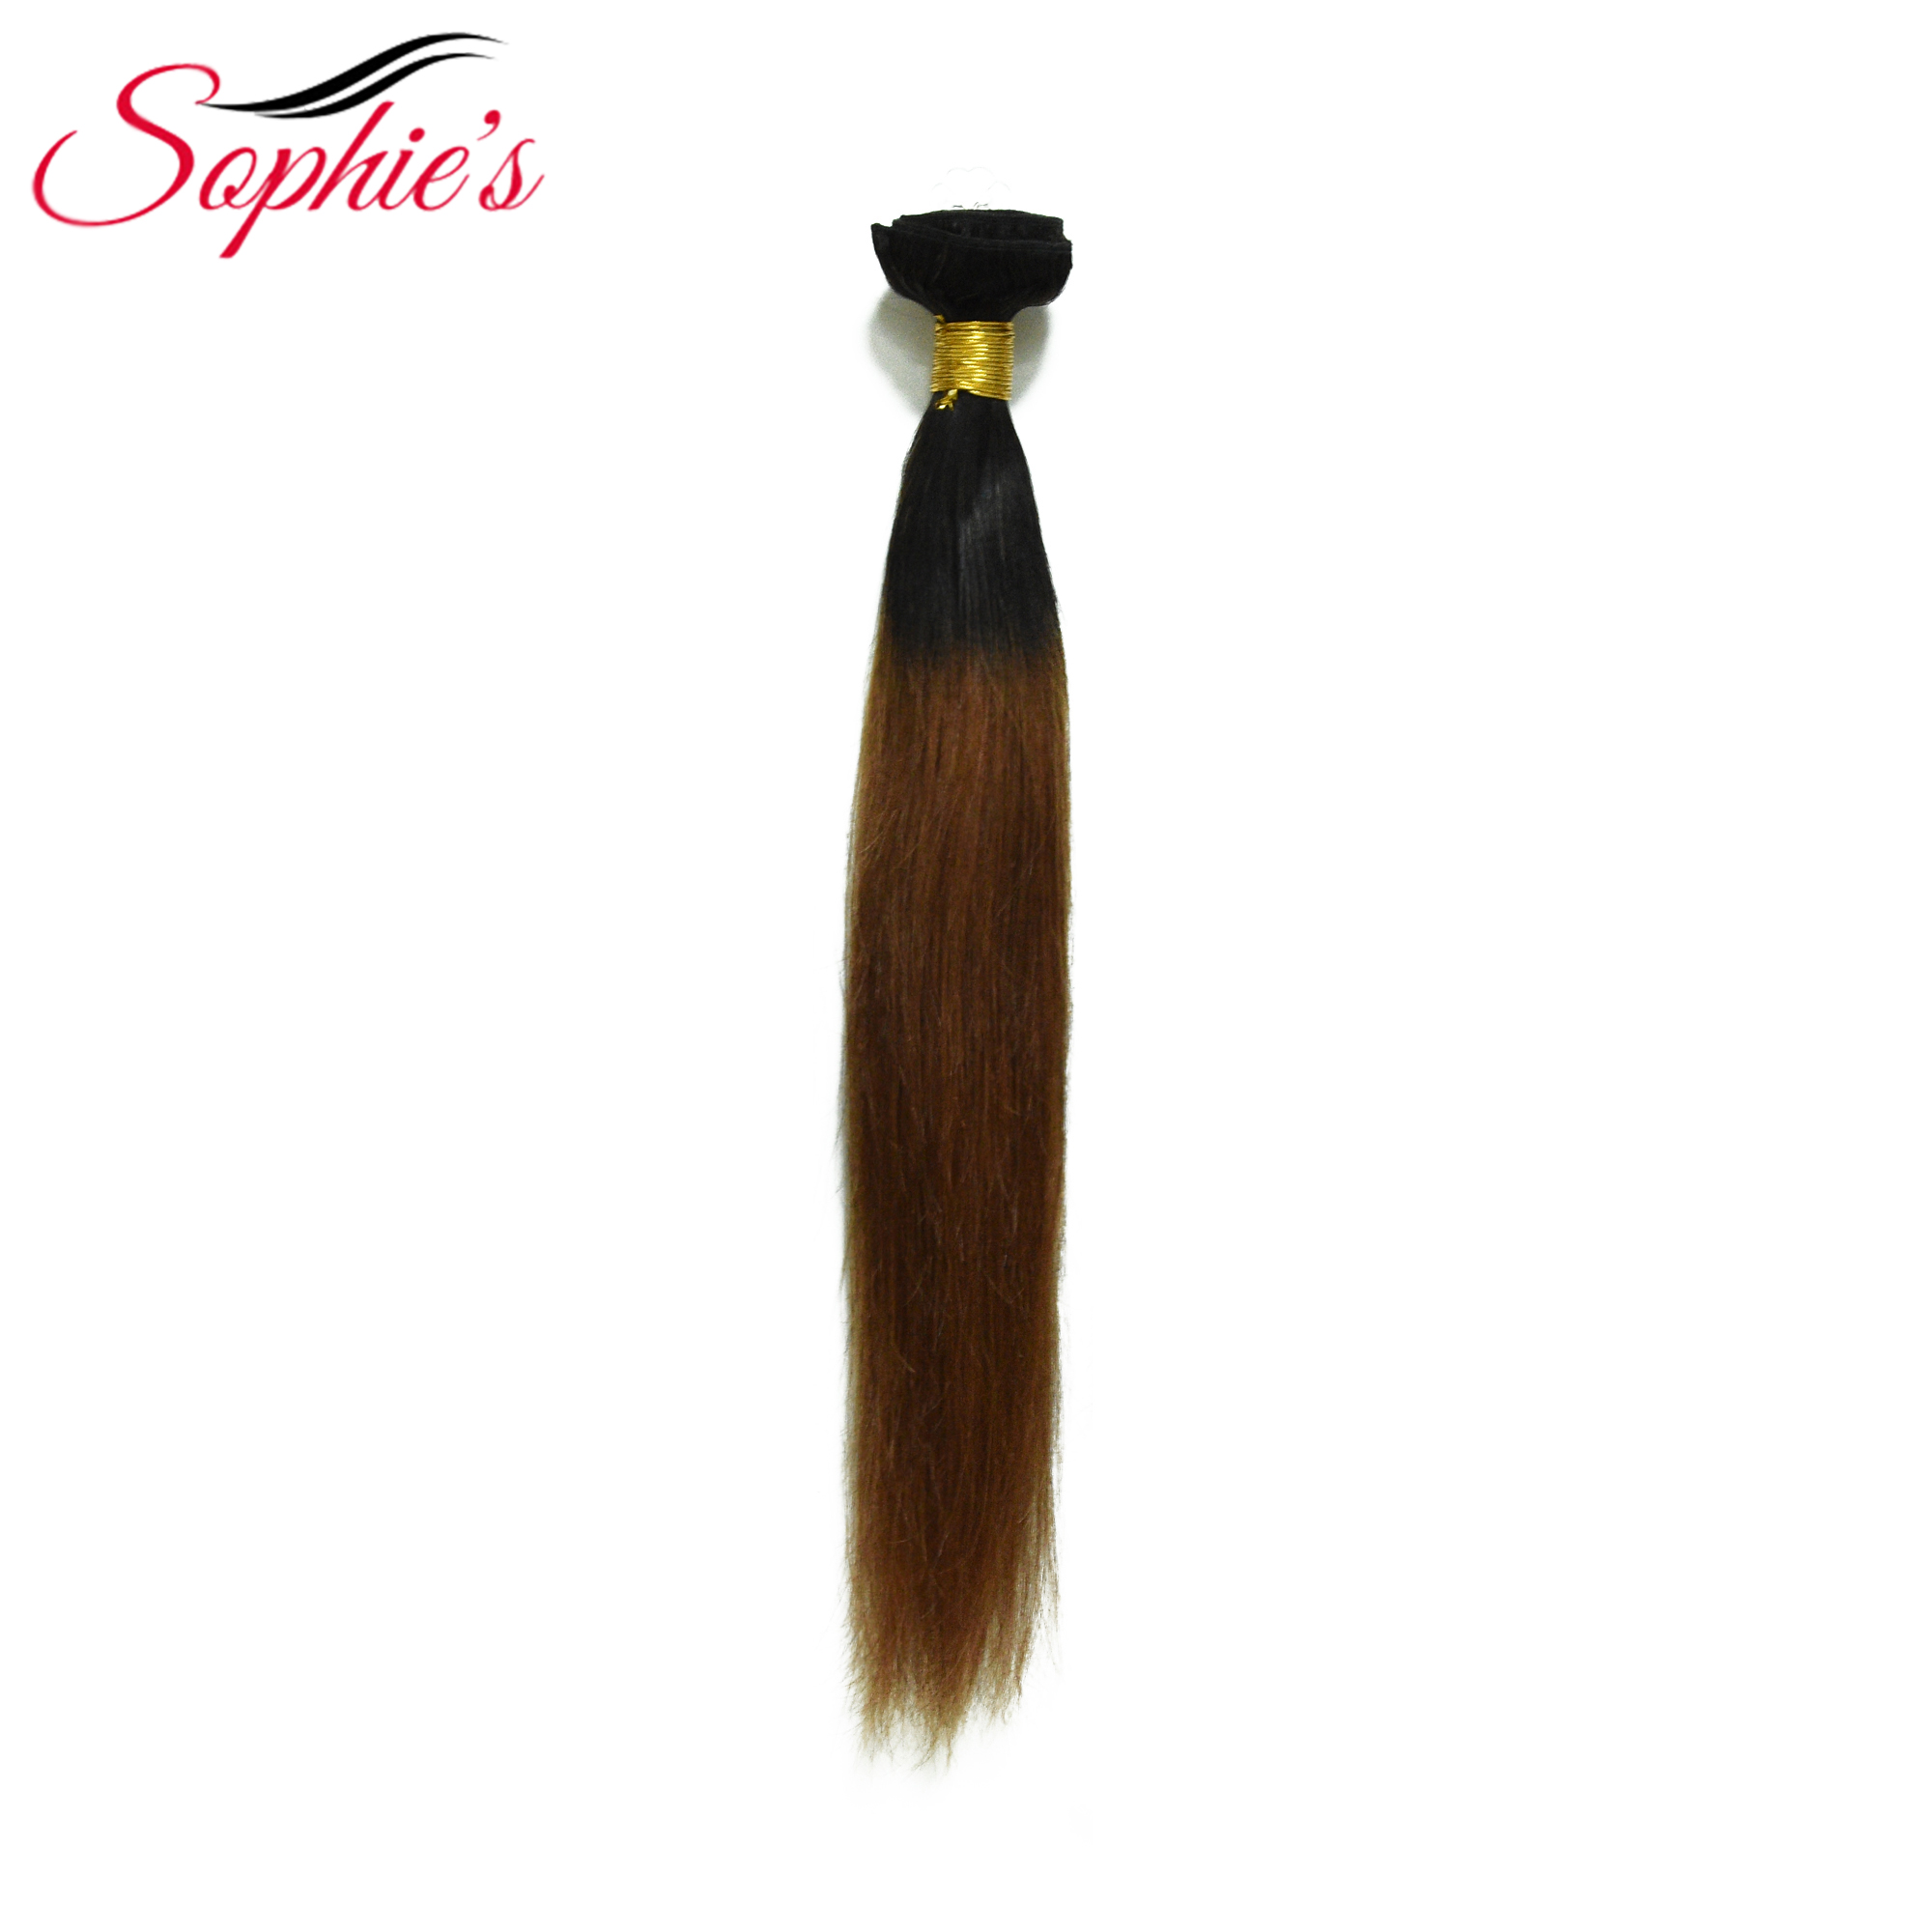 Sophie's Pre-colored Ombre Hair Bundles  4 Bundles  T1B/33 Color Human Non-Remy Straight Brazilian Hair Weaves Hair Extensions